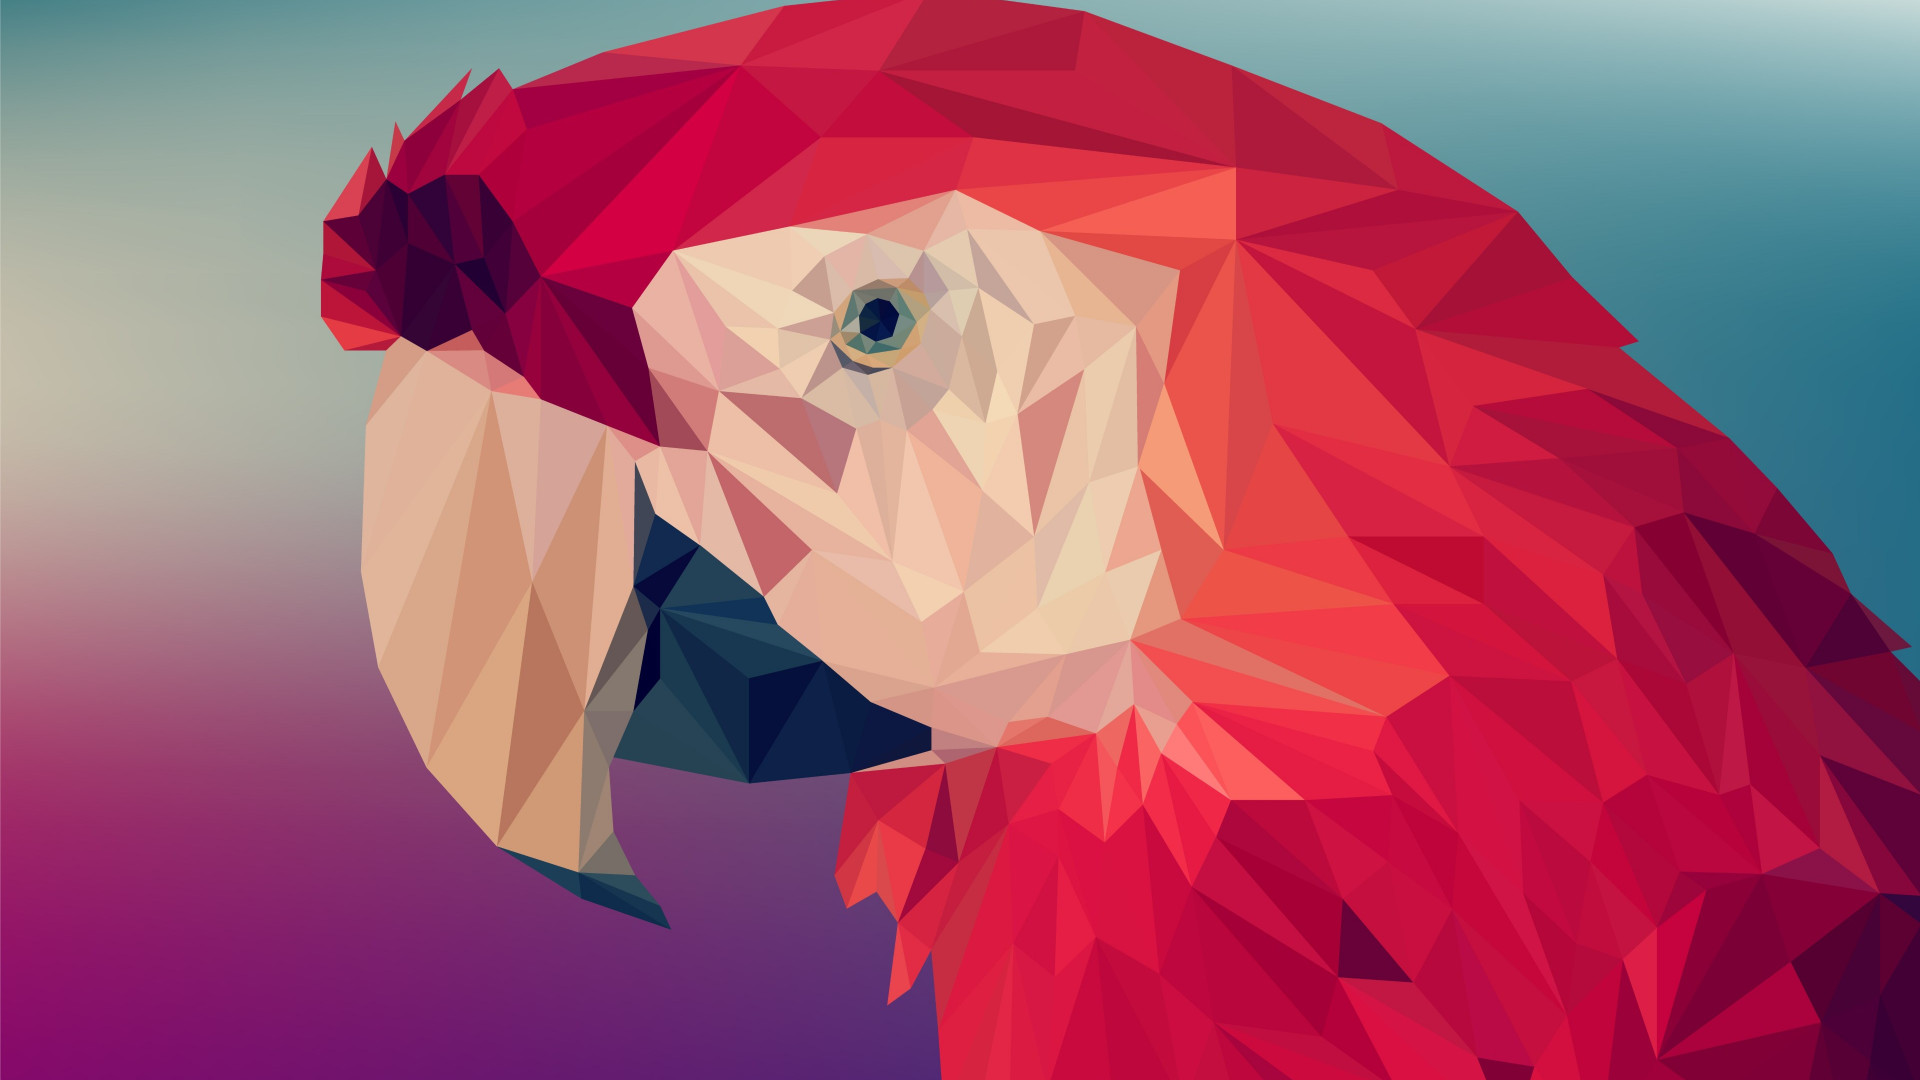 Low poly art: Red parrot wallpaper 1920x1080